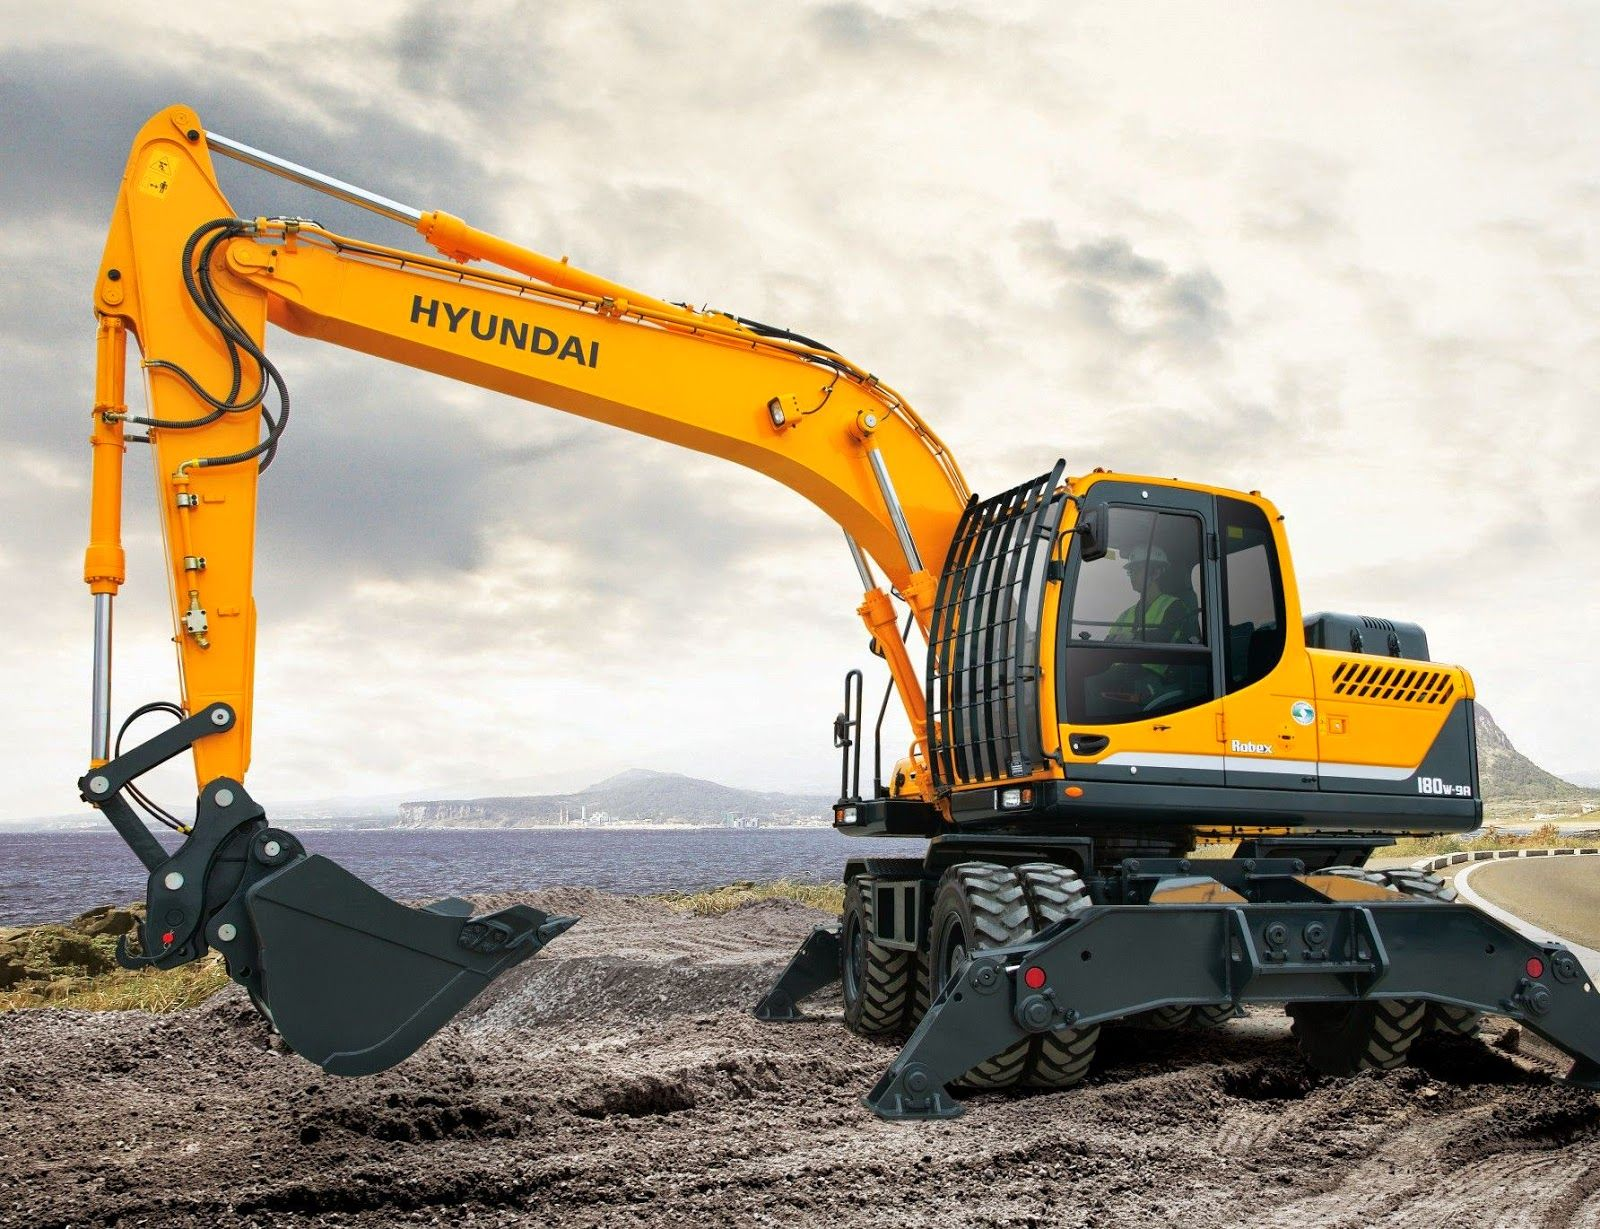 Hyundai Excavator Price List 210lc 7 Wiring Diagram Search Gumtree Free Online I X Set Of Grouser Shoes For Volvo 16 Ton Wheel Sale Reduced We Have The Equipment You Need Pro Or